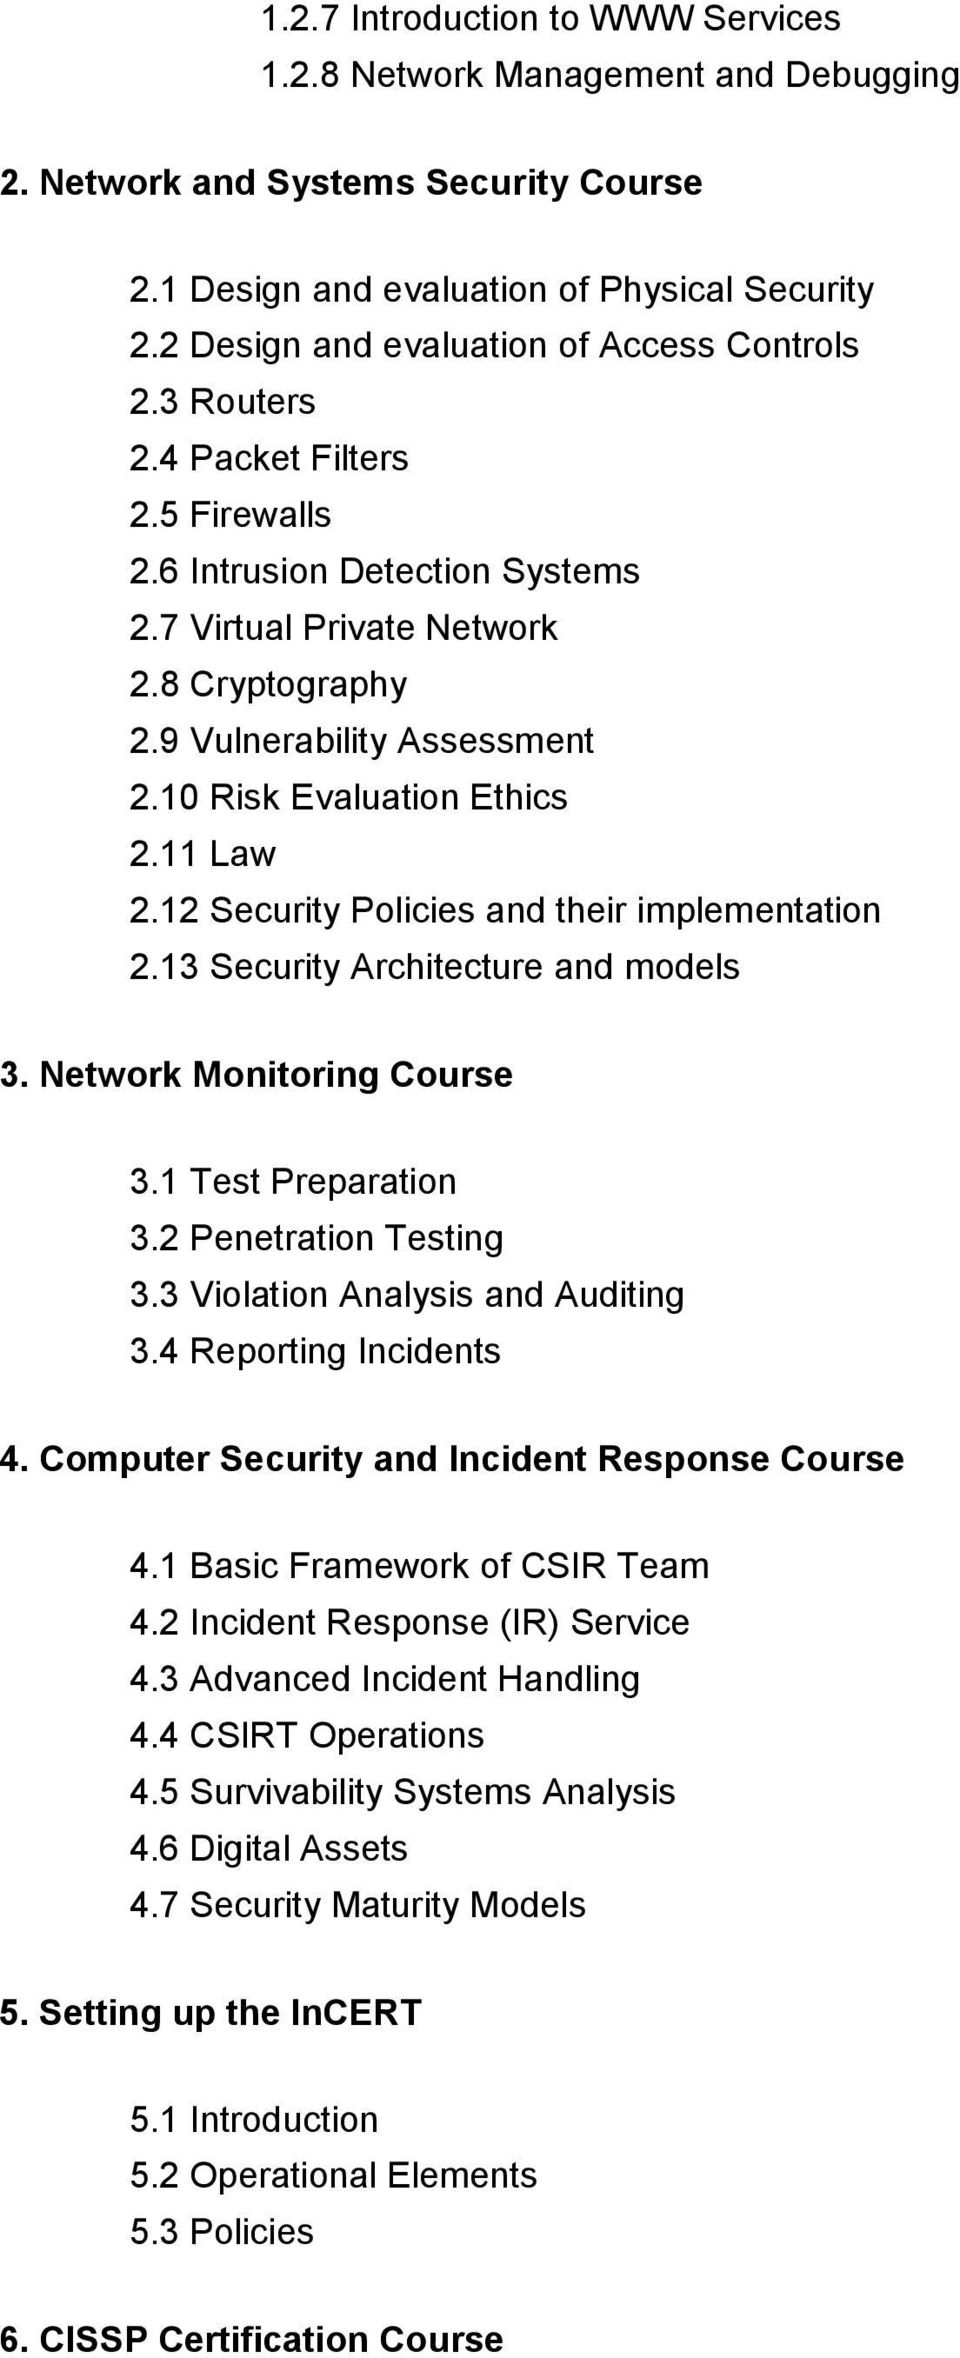 10 Risk Evaluation Ethics 2.11 Law 2.12 Security Policies and their implementation 2.13 Security Architecture and models 3. Network Monitoring Course 3.1 Test Preparation 3.2 Penetration Testing 3.